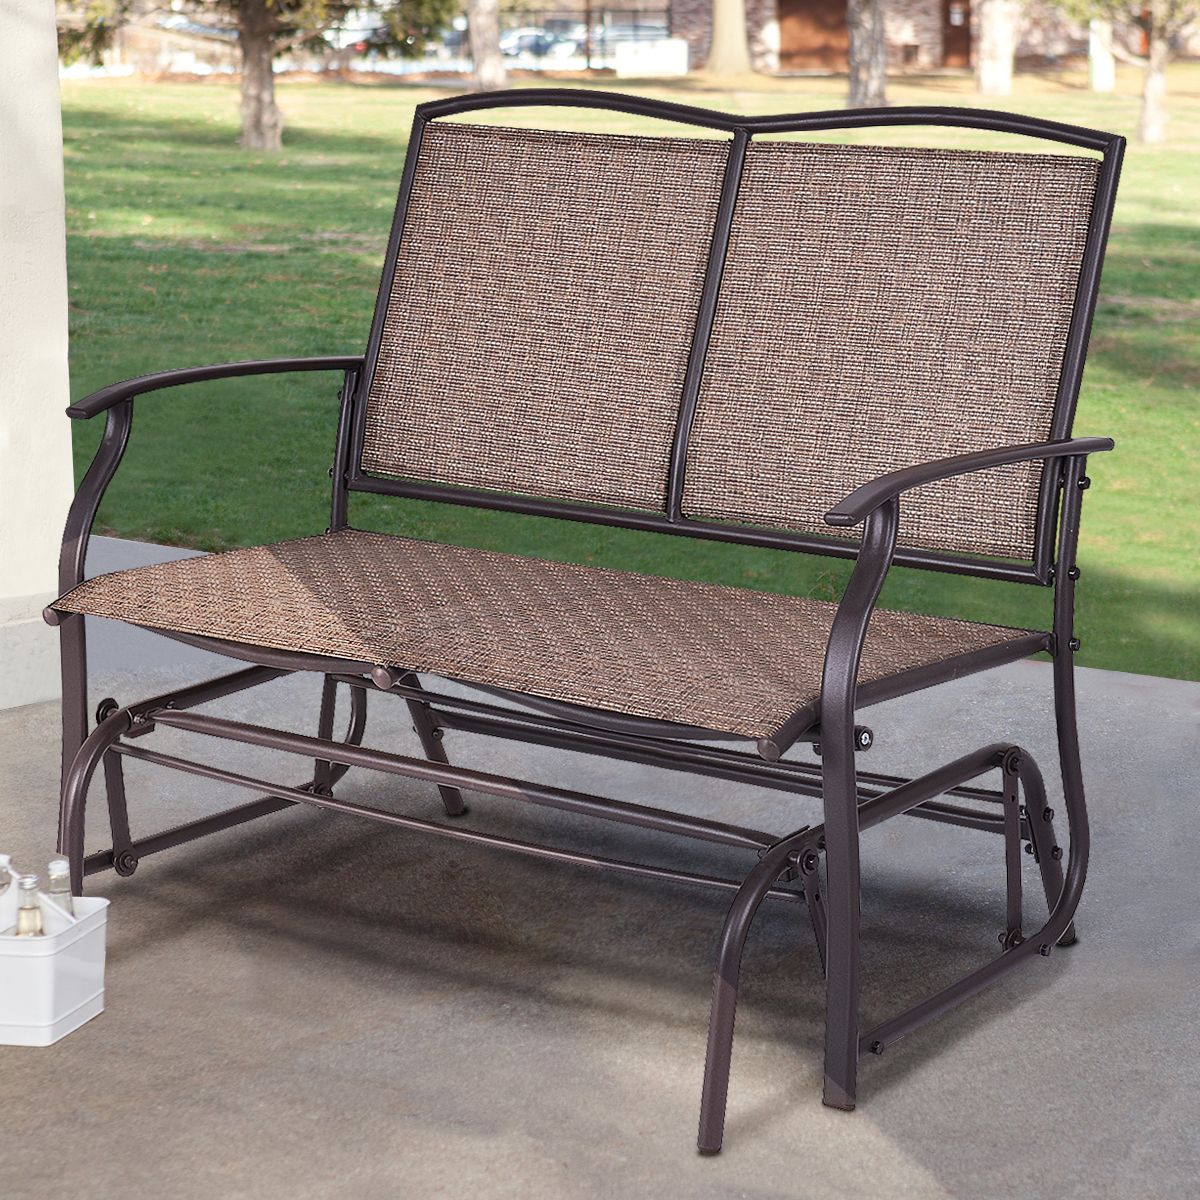 Costway Patio Glider Rocking Bench Double 2 Person Chair Loveseat Armchair  Backyard – Walmart Pertaining To Popular Outdoor Patio Swing Porch Rocker Glider Benches Loveseat Garden Seat Steel (View 7 of 25)